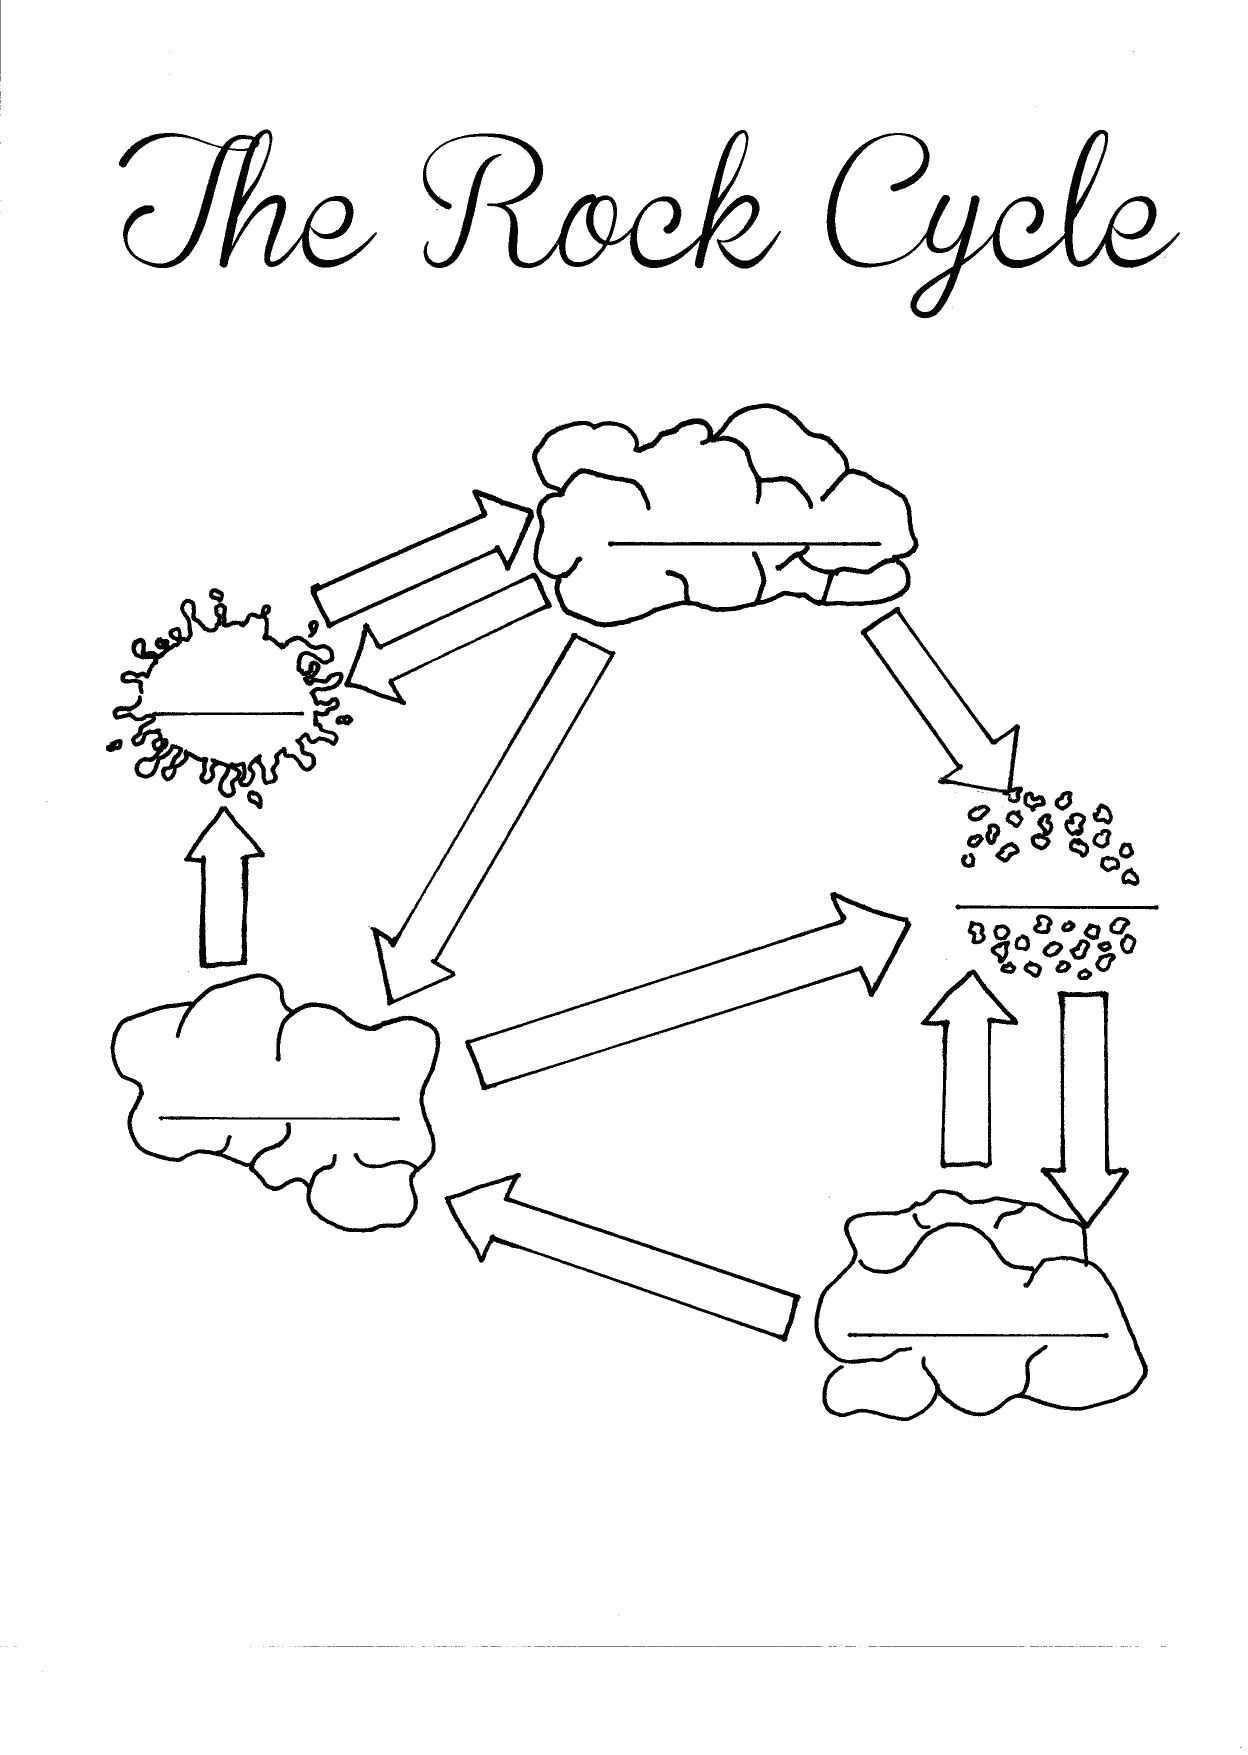 Blank Rock Cycle Diagram Worksheet How To Wire Two Amps Together The Fill In As You Talk About Or Go Through Using Crayons